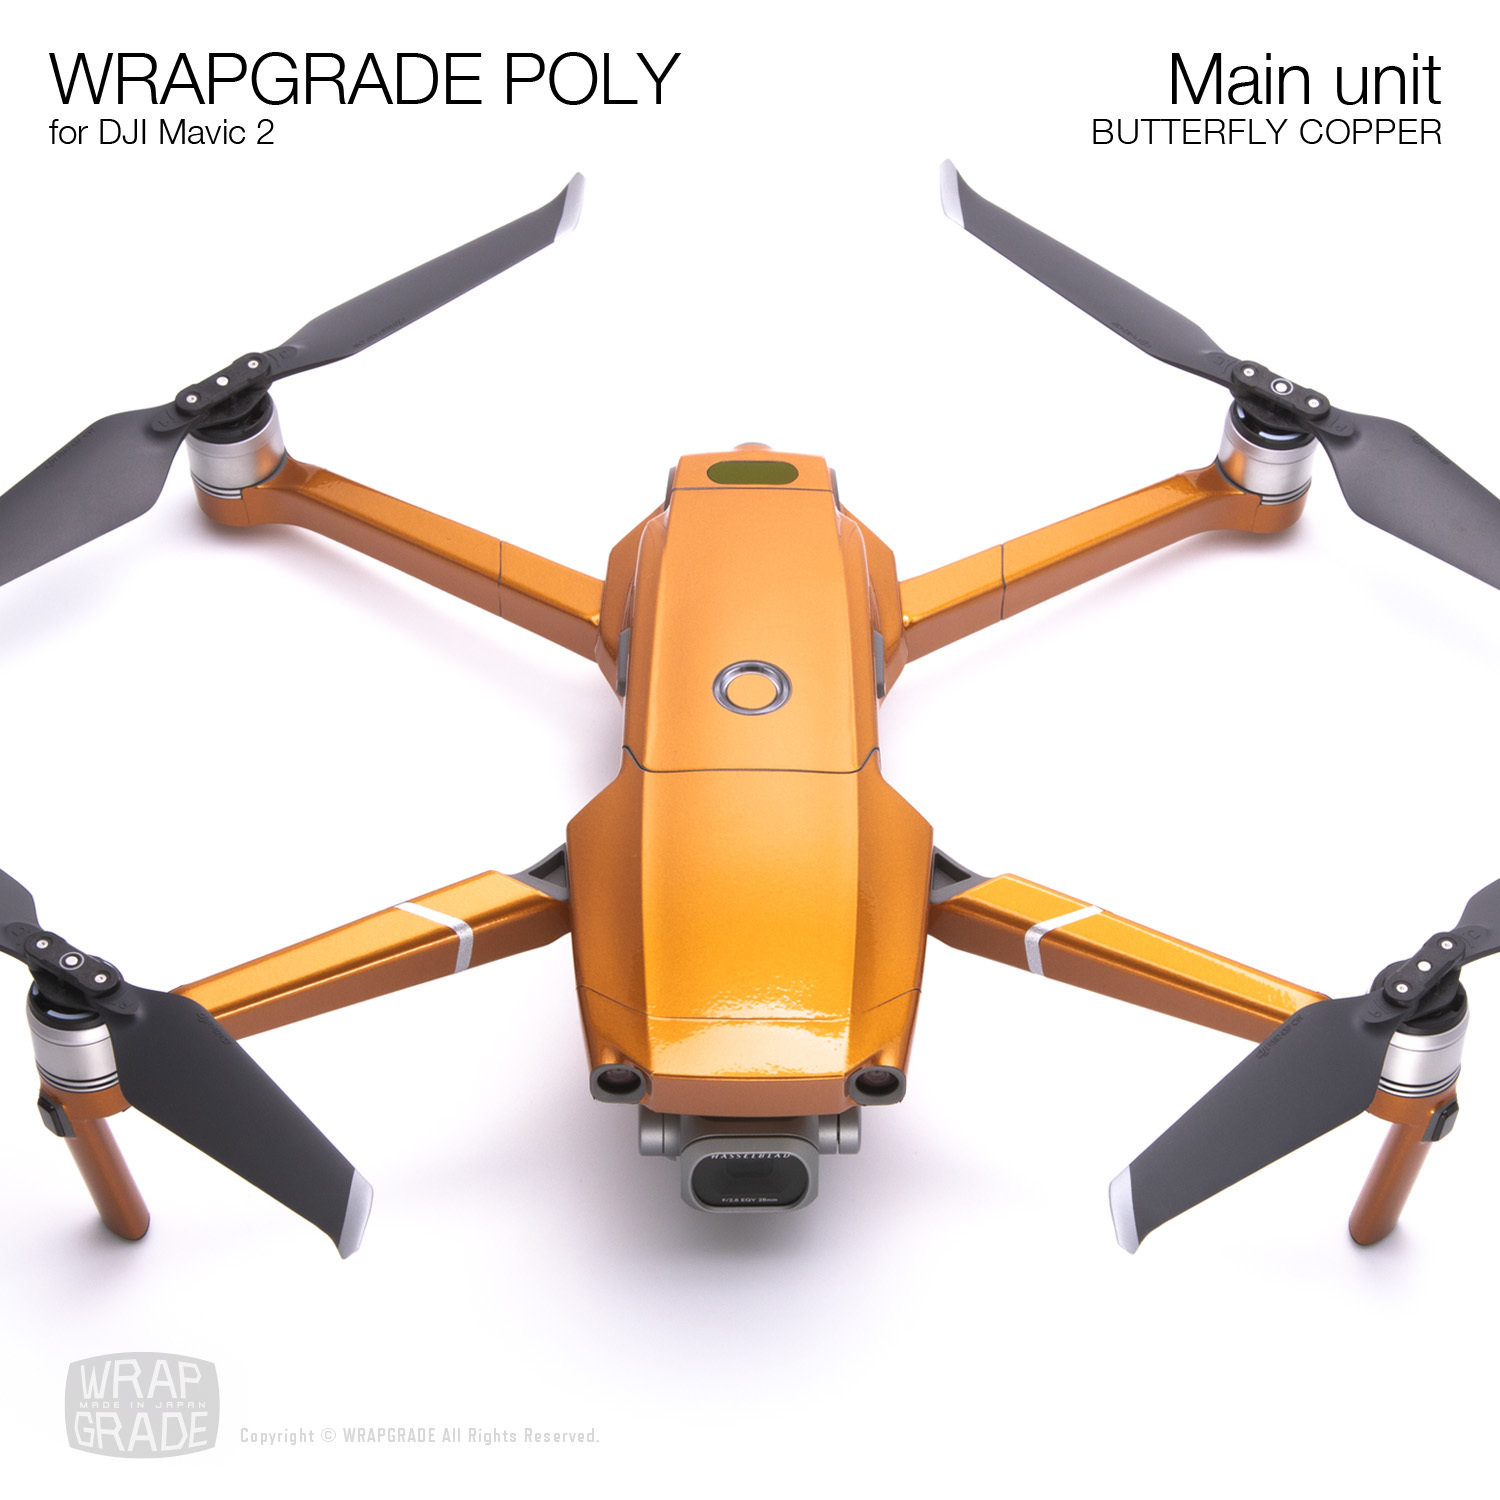 Wrapgrade Poly Skin for DJI Mavic 2 | Main unit (BUTTERFLY COPPER)